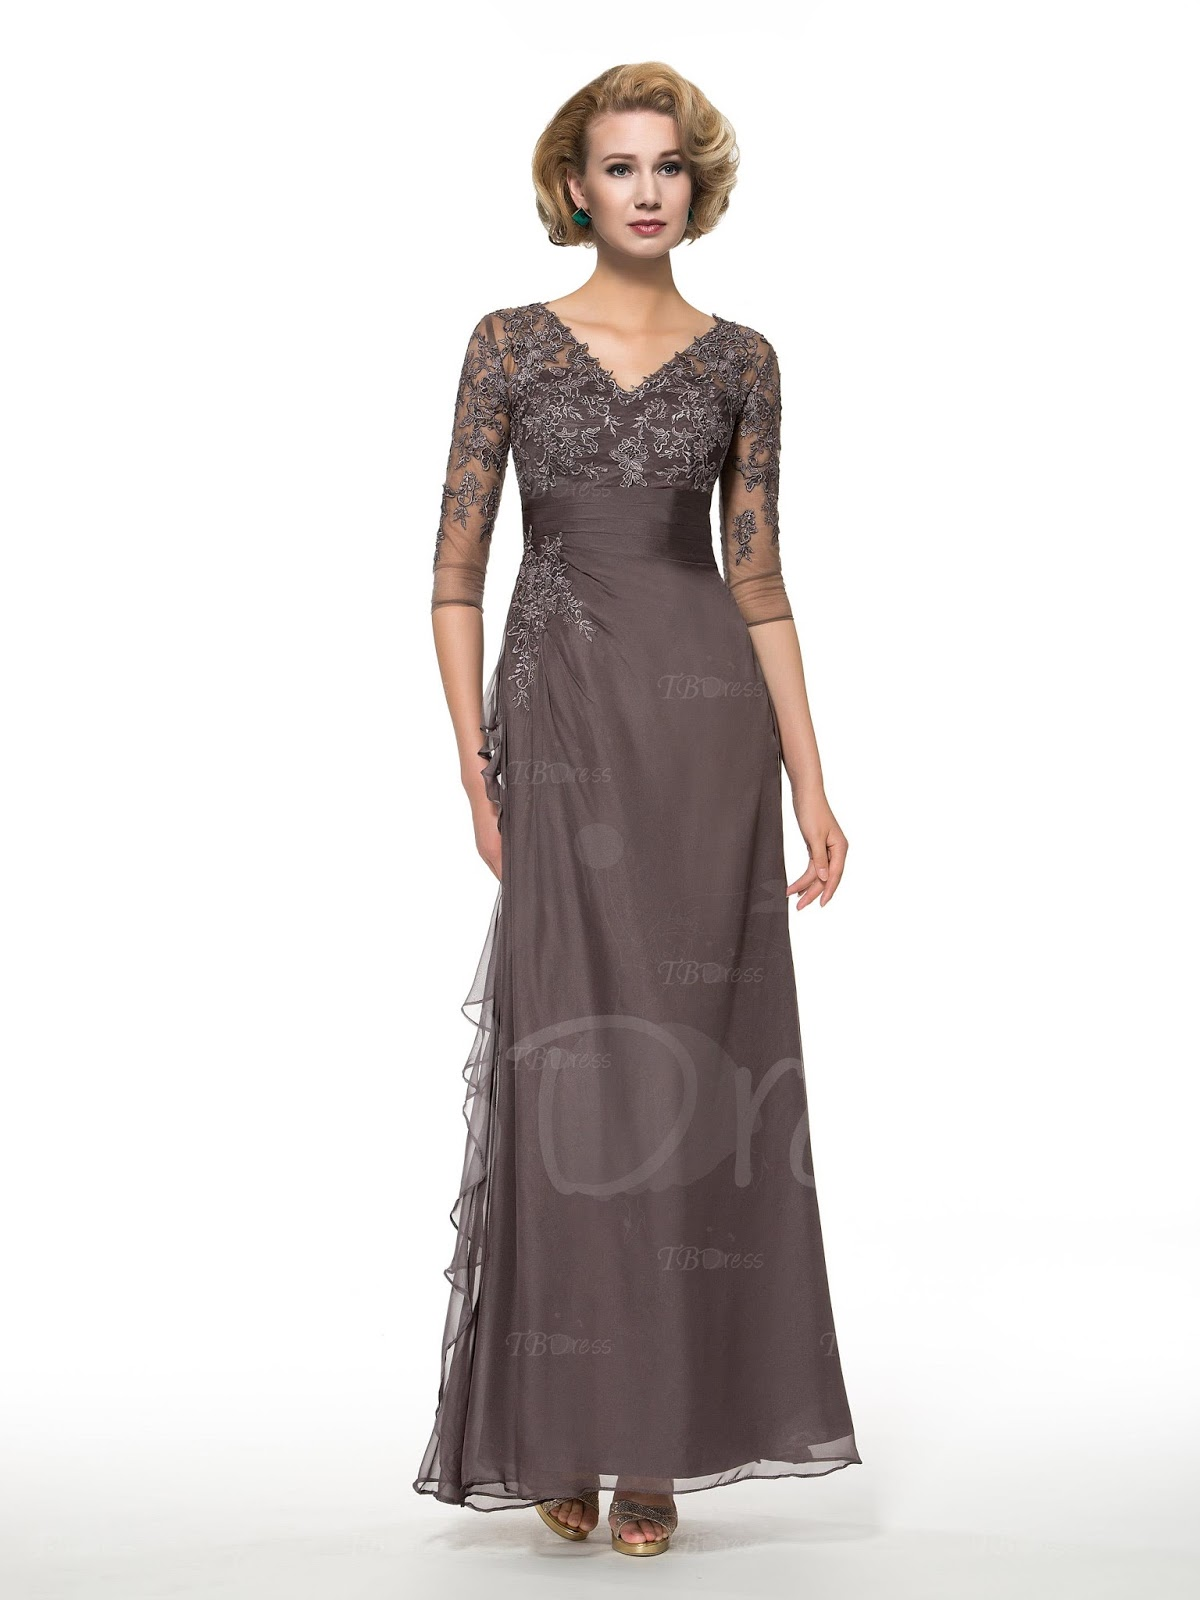 Online Mother Of The Bride Dresses - Wedding Dresses In Jax